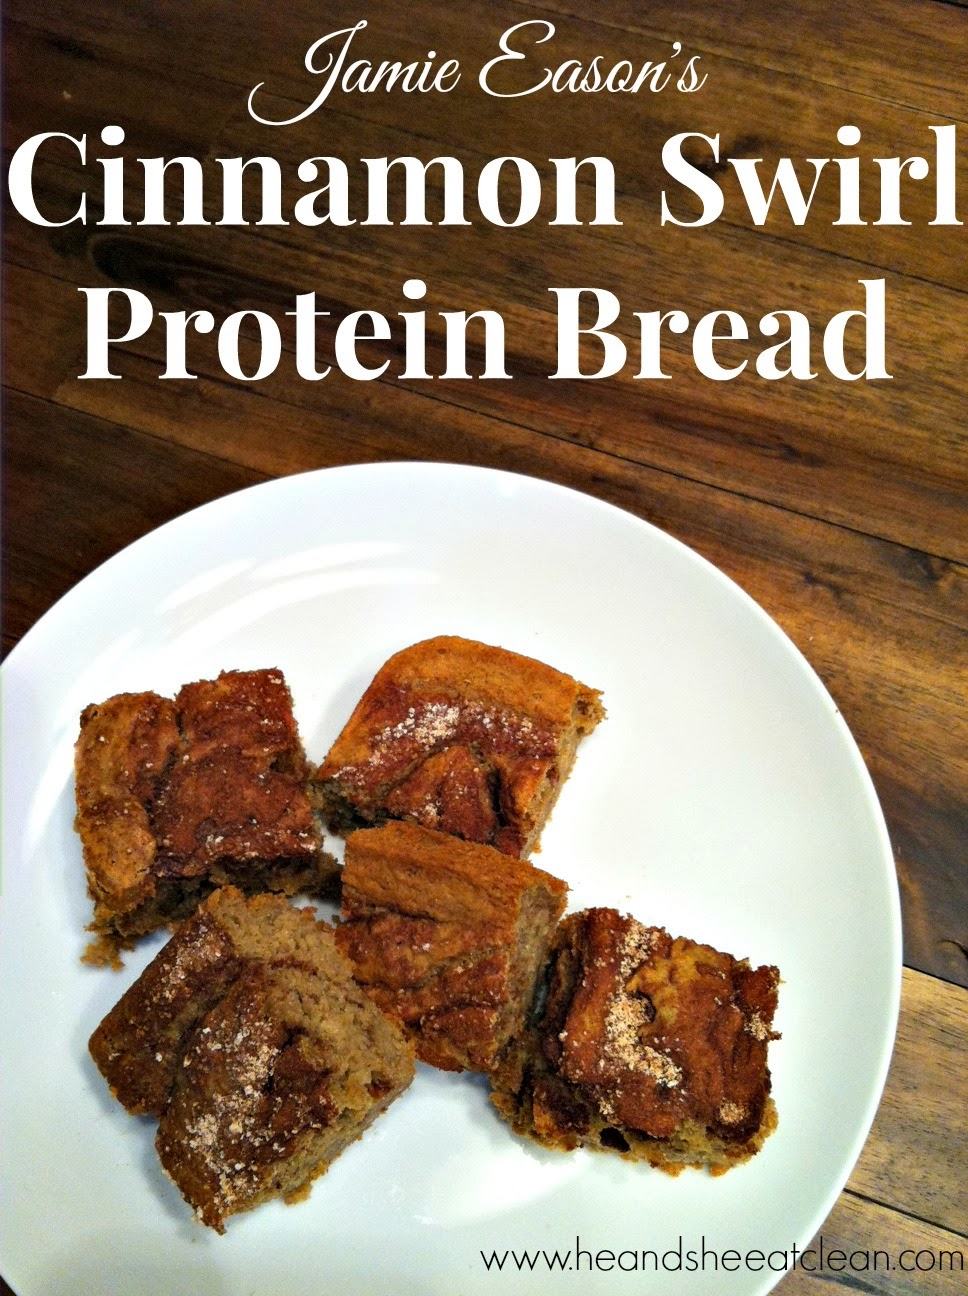 jamie-eason-middleton-cinnamon-swirl-protein-bread-bar-recipe-vanilla-powder-he-she-eat-clean-make-gluten-free.jpg